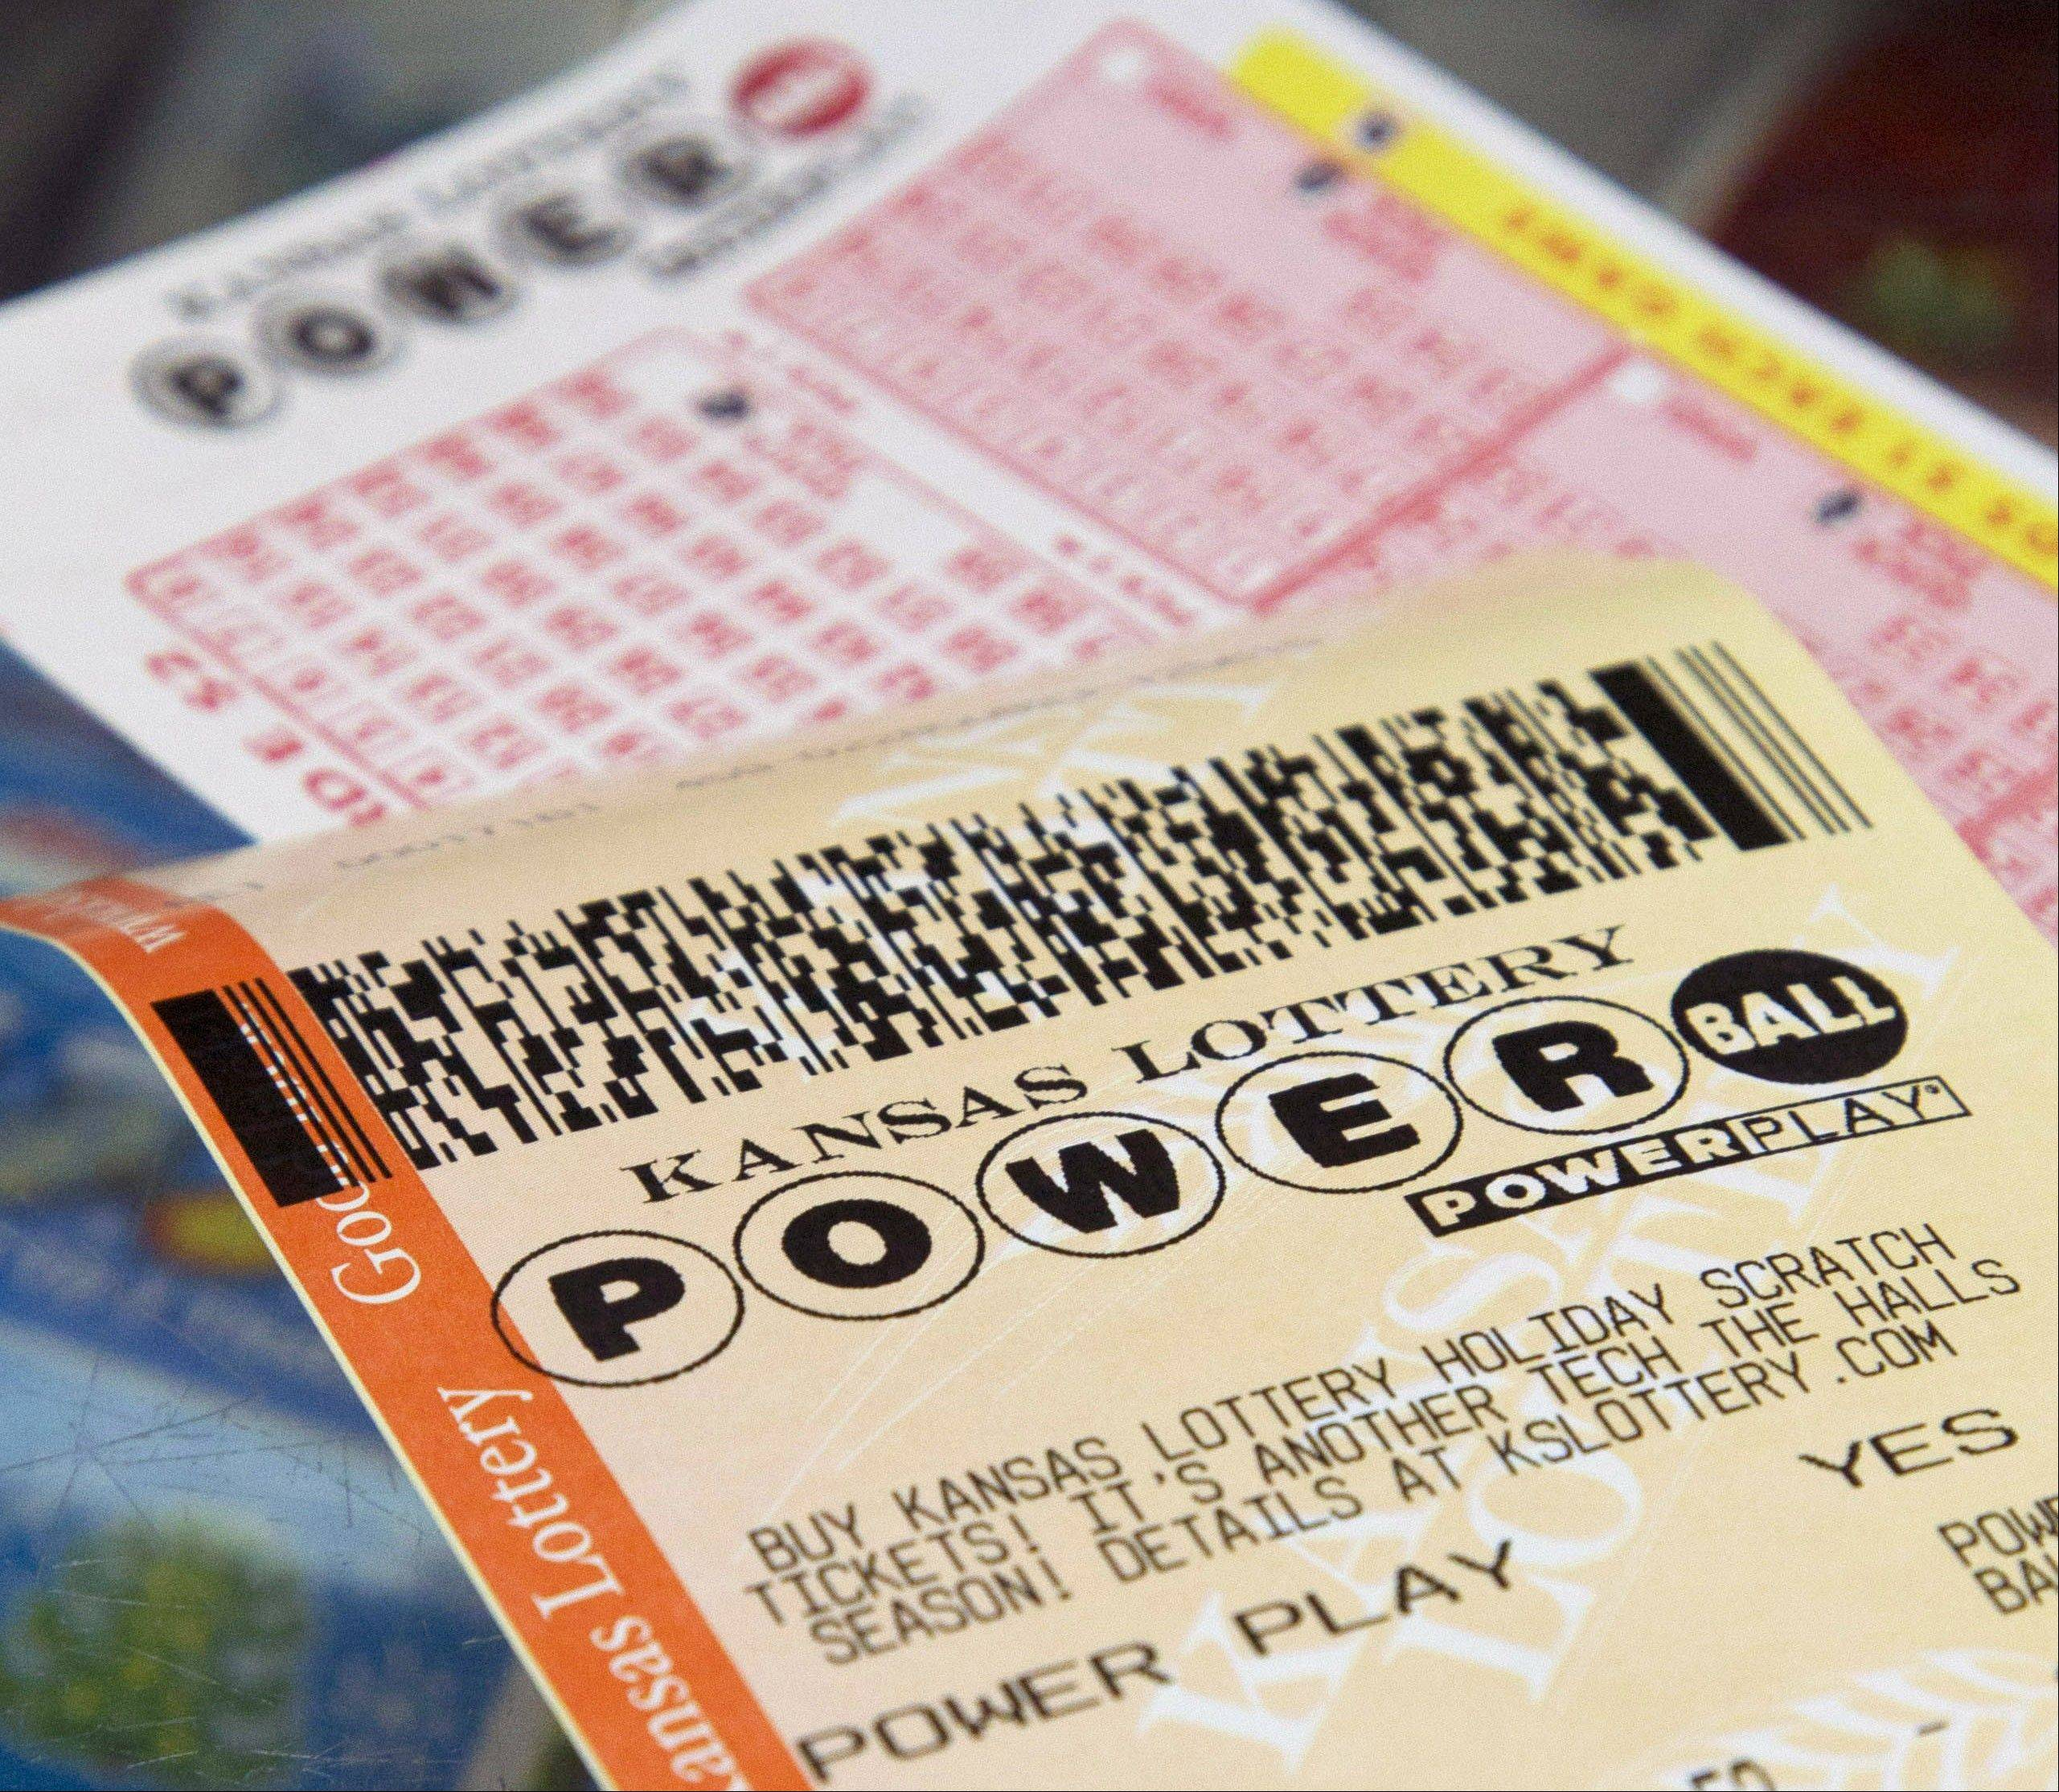 A single ticket sold in New Jersey matched all six numbers in the Saturday night drawing for the $338.3 million Powerball jackpot, lottery officials said.